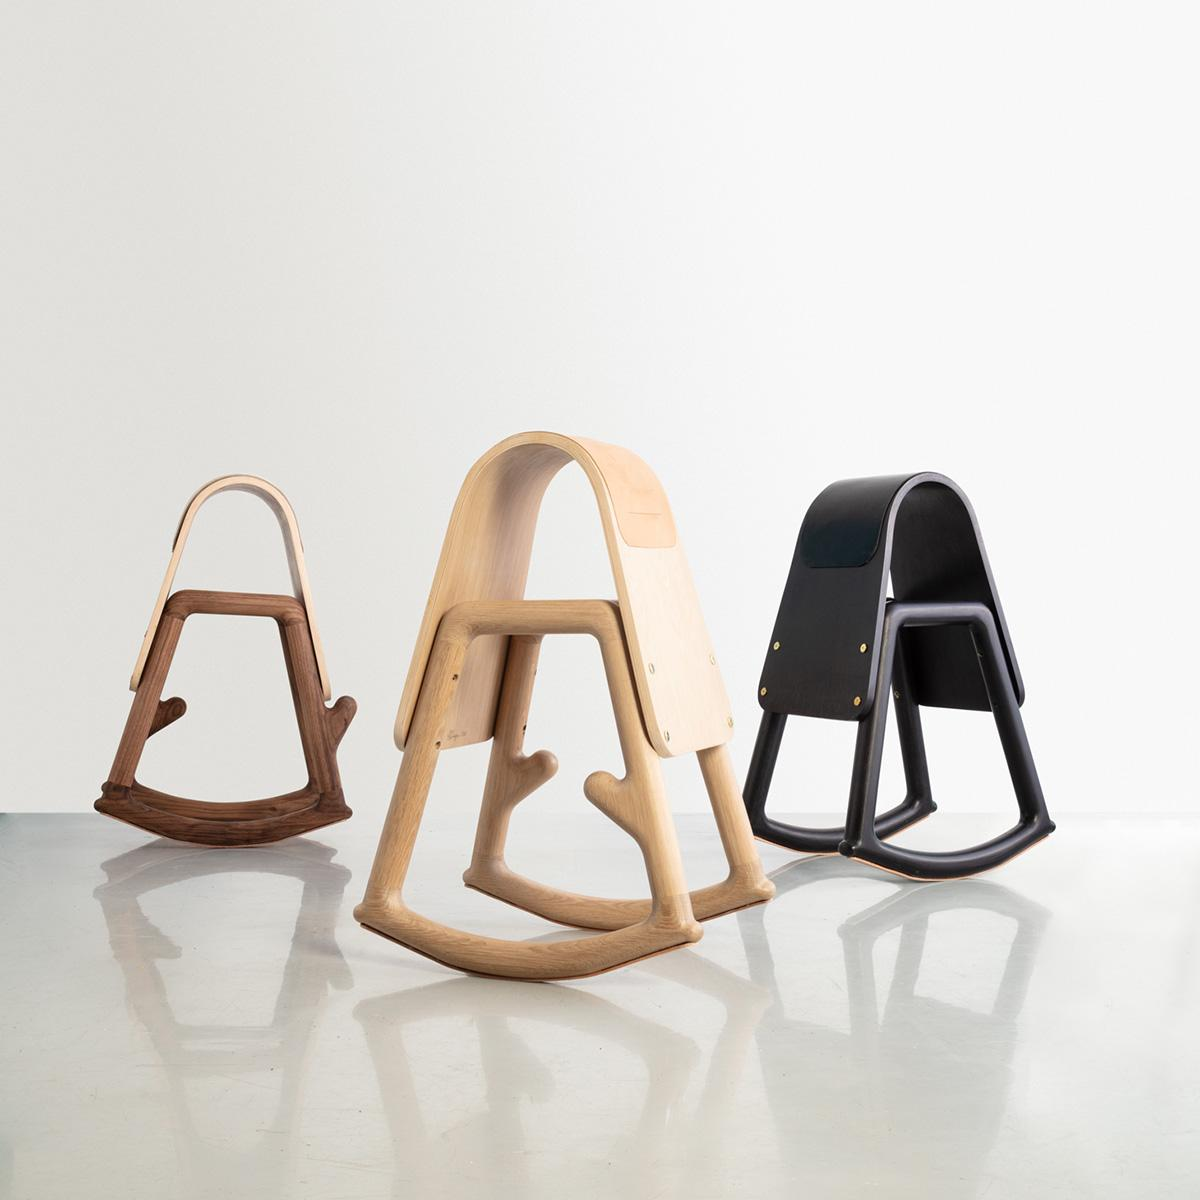 Sinmi rocking stools by Norman Teague